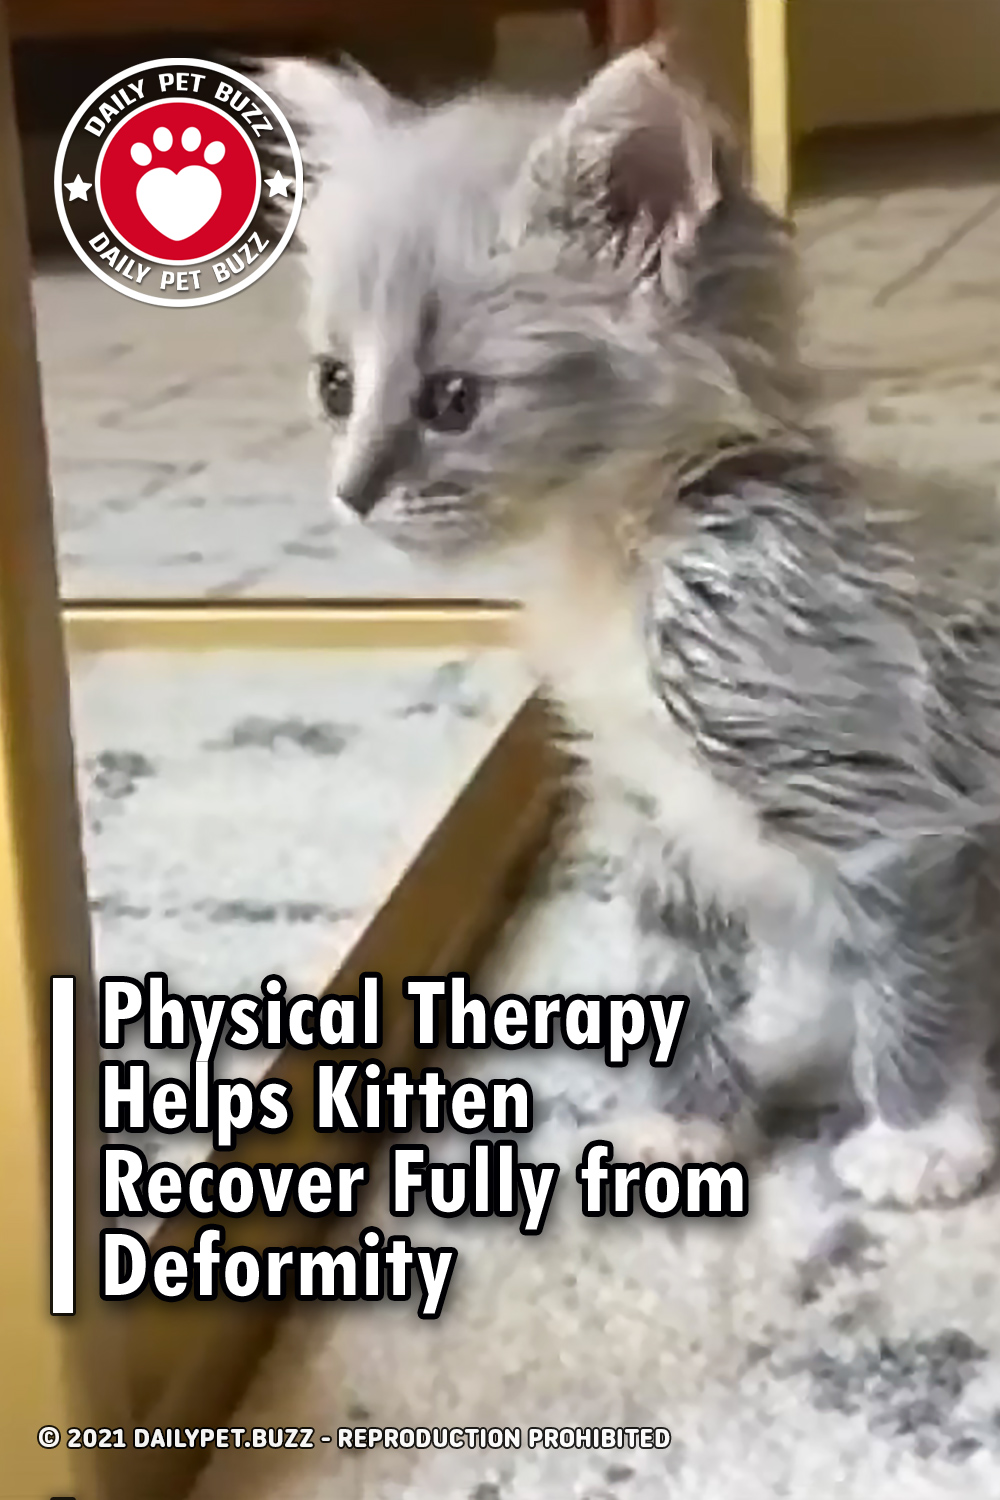 Physical Therapy Helps Kitten Recover Fully from Deformity